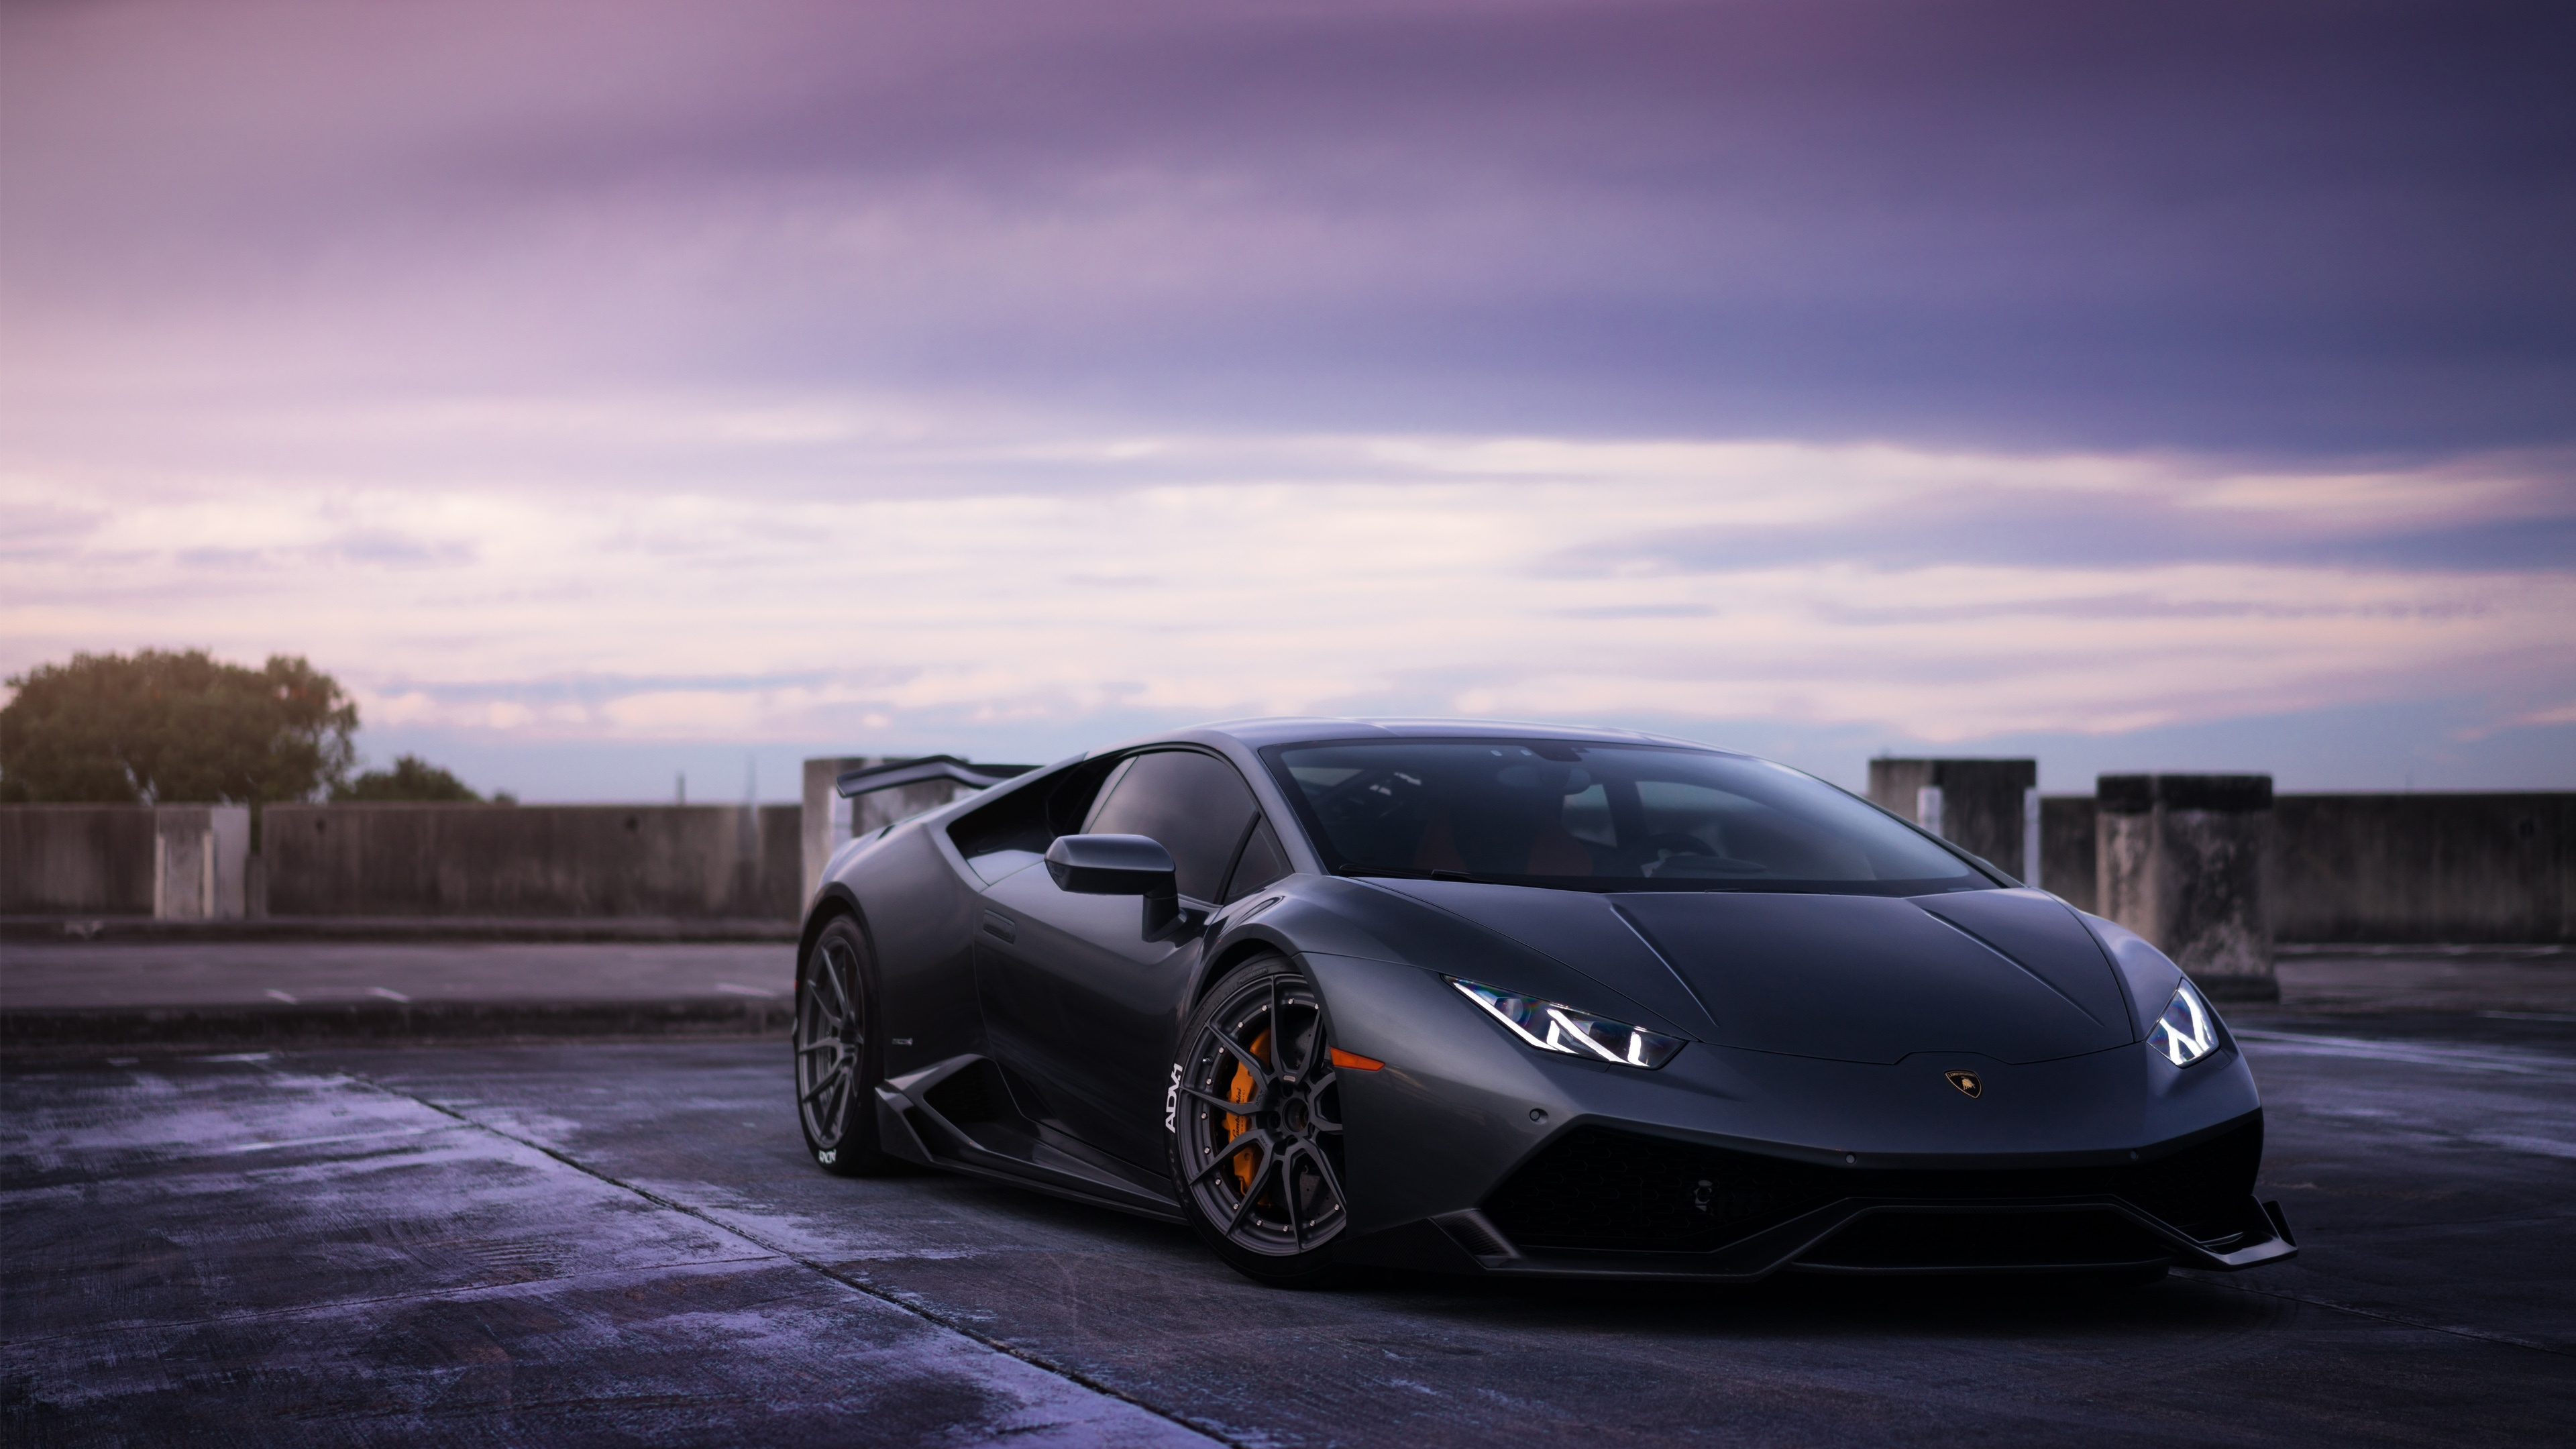 Lamborghini Haracan Review